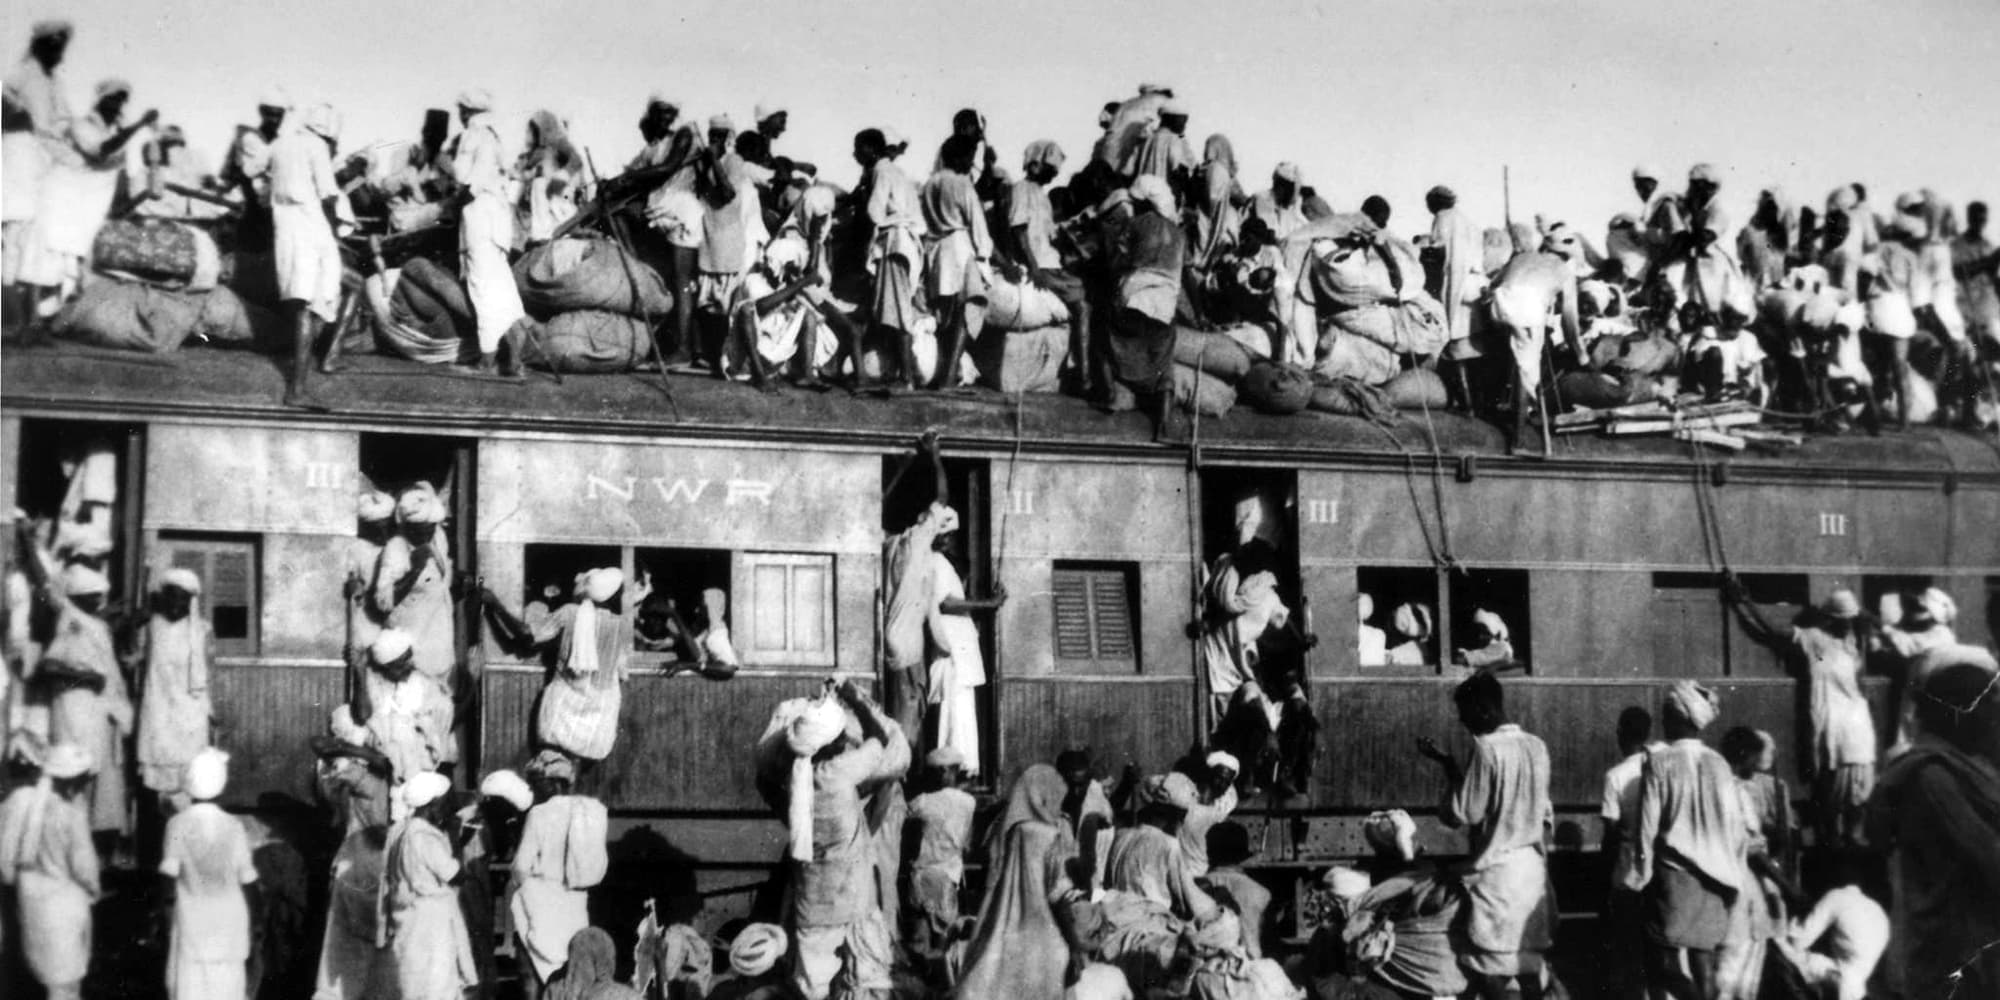 Muslim refugees sit on the roof of an overcrowded train near New Delhi as they try to flee India. AP Photo/File